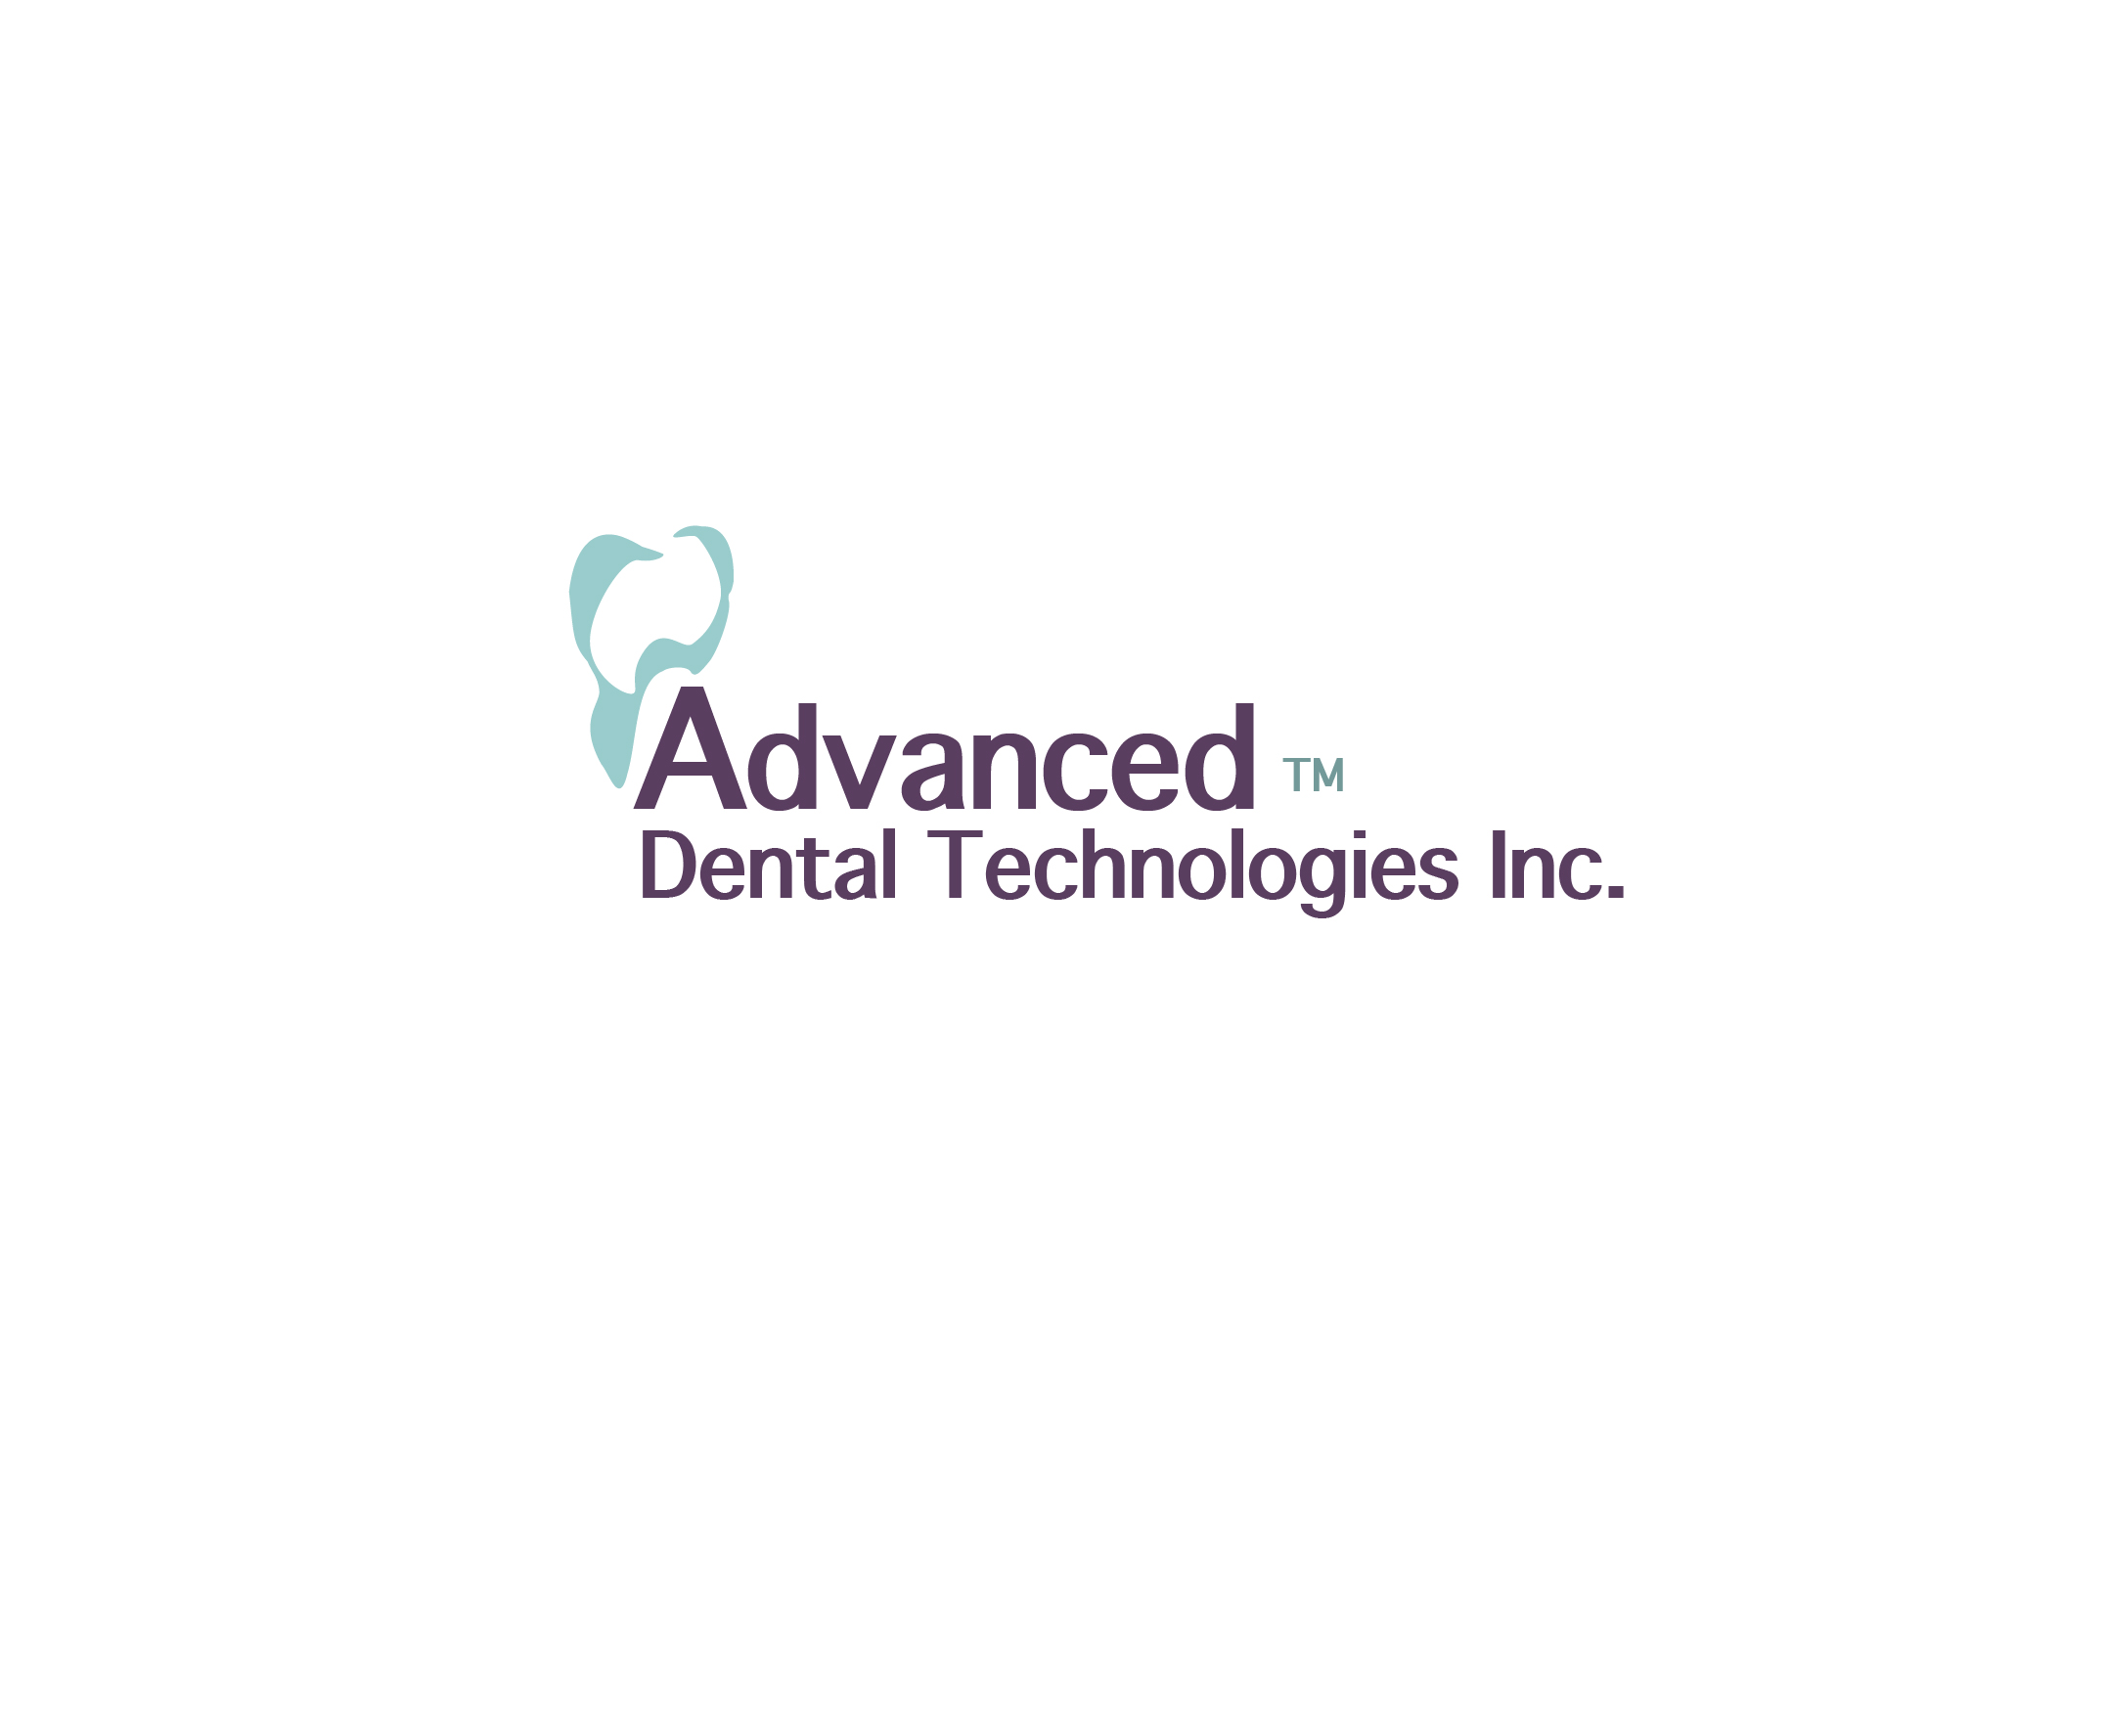 Logo Design by Nancy Grant - Entry No. 136 in the Logo Design Contest Fun Logo Design for Advanced Dental Technologies Inc..